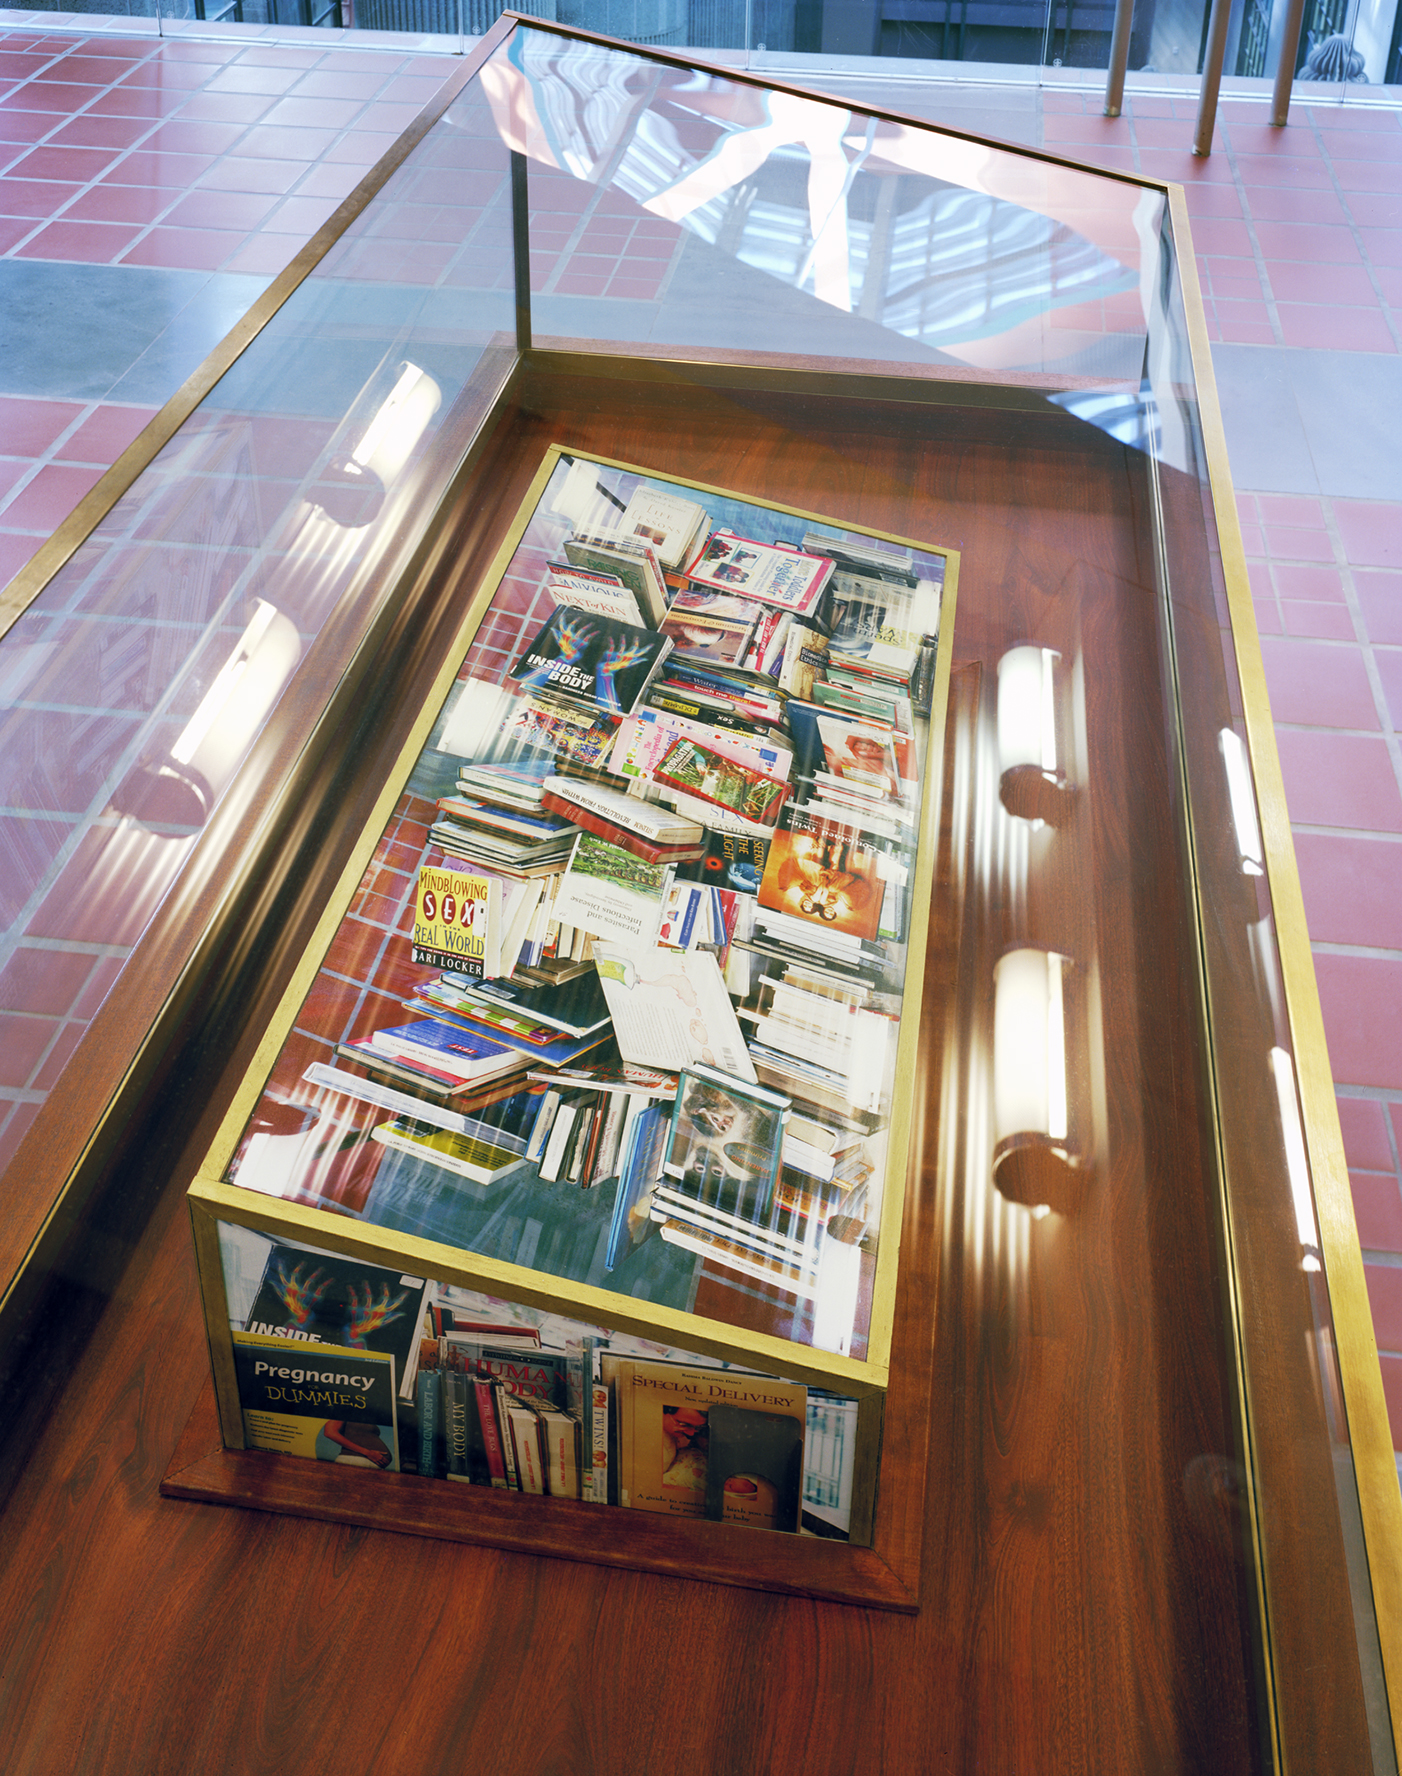 Paper Surrogate, Public Project ,  Los Angeles Central Library  (Top View), 2010 Wood, acrylic paint, and photographs      ————